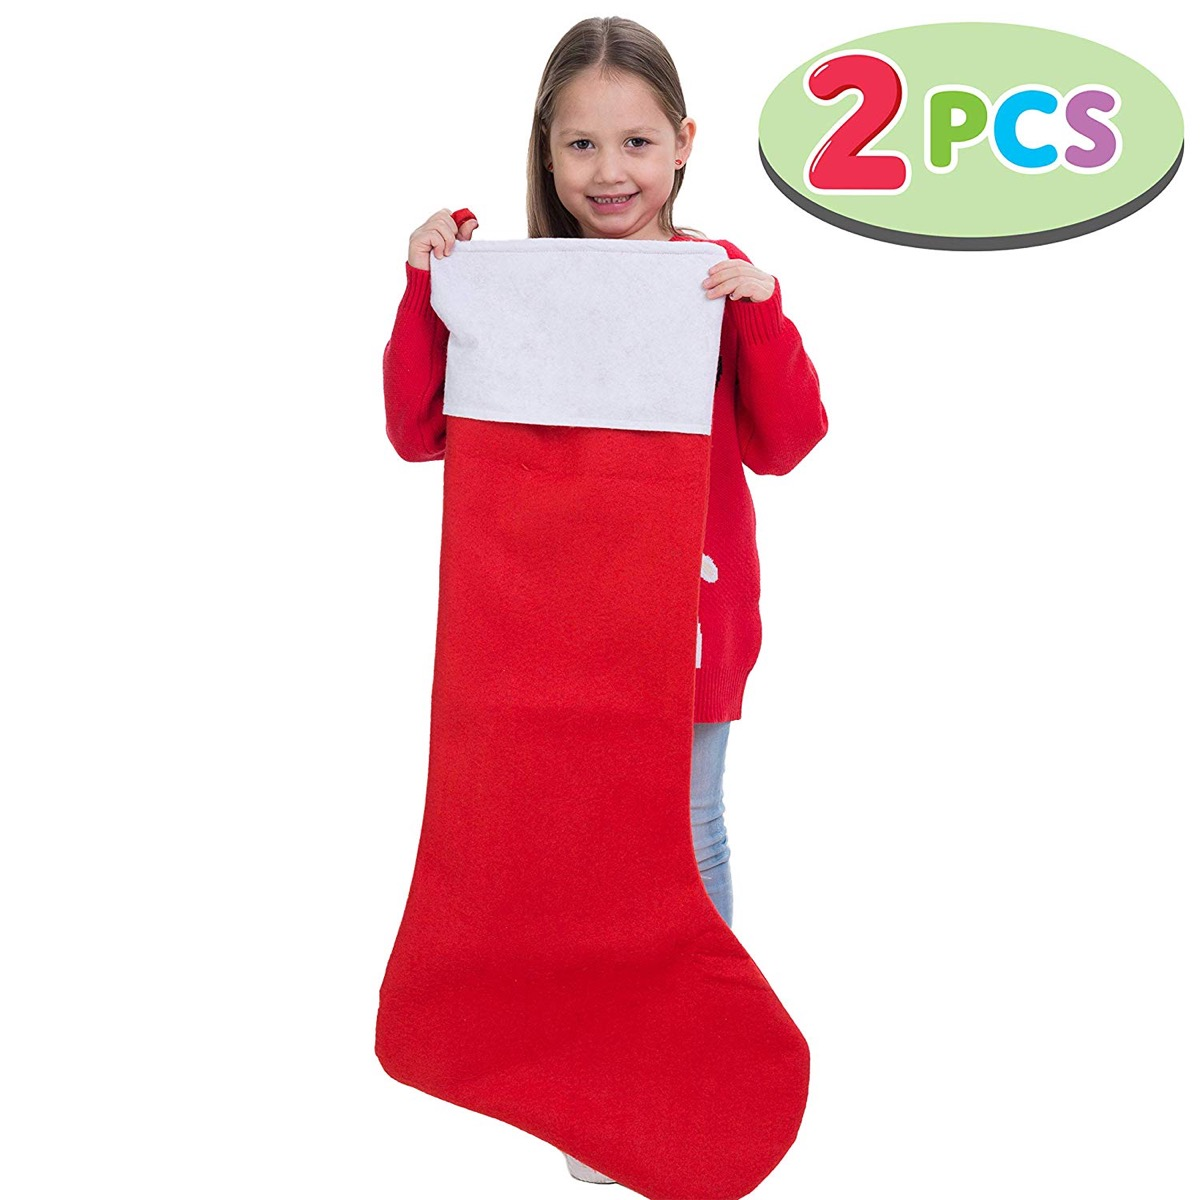 young girl holding up huge red and white stocking